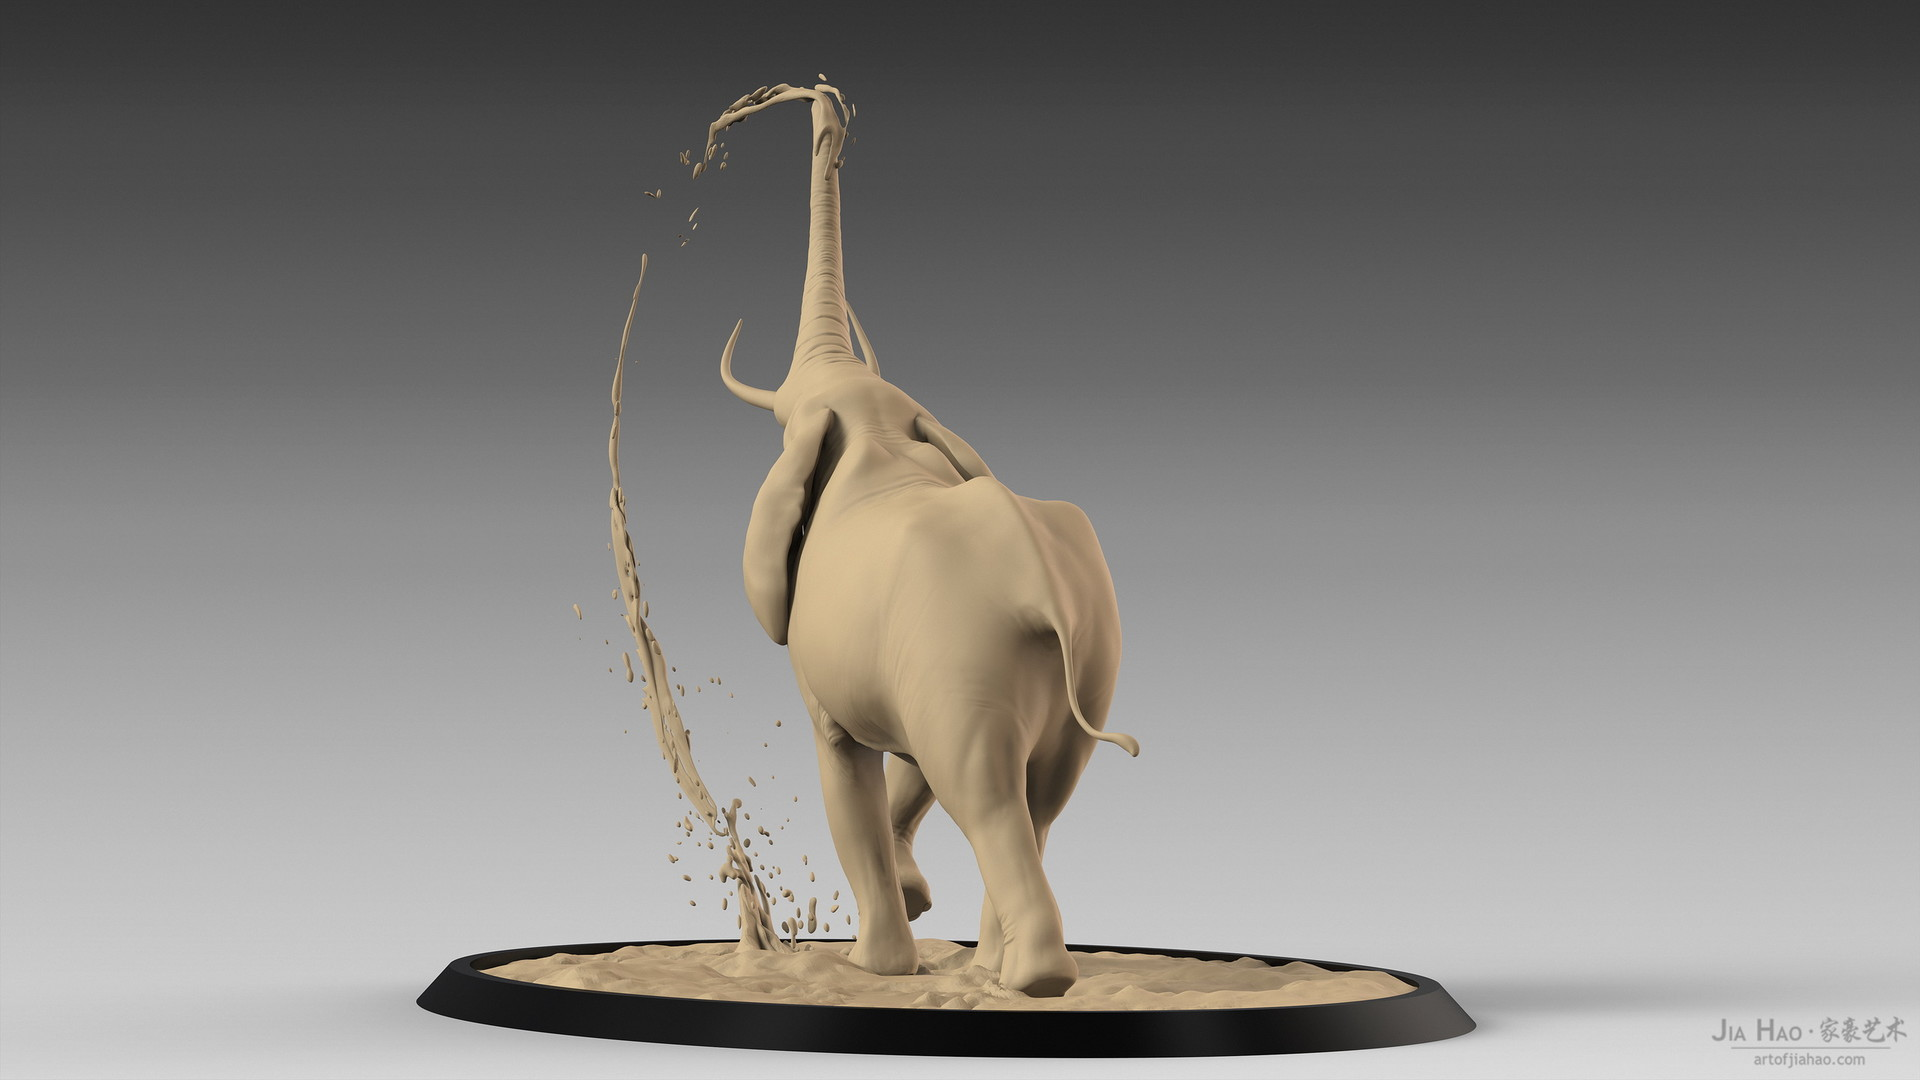 Jia hao africanelephant digitalsculpturea 06